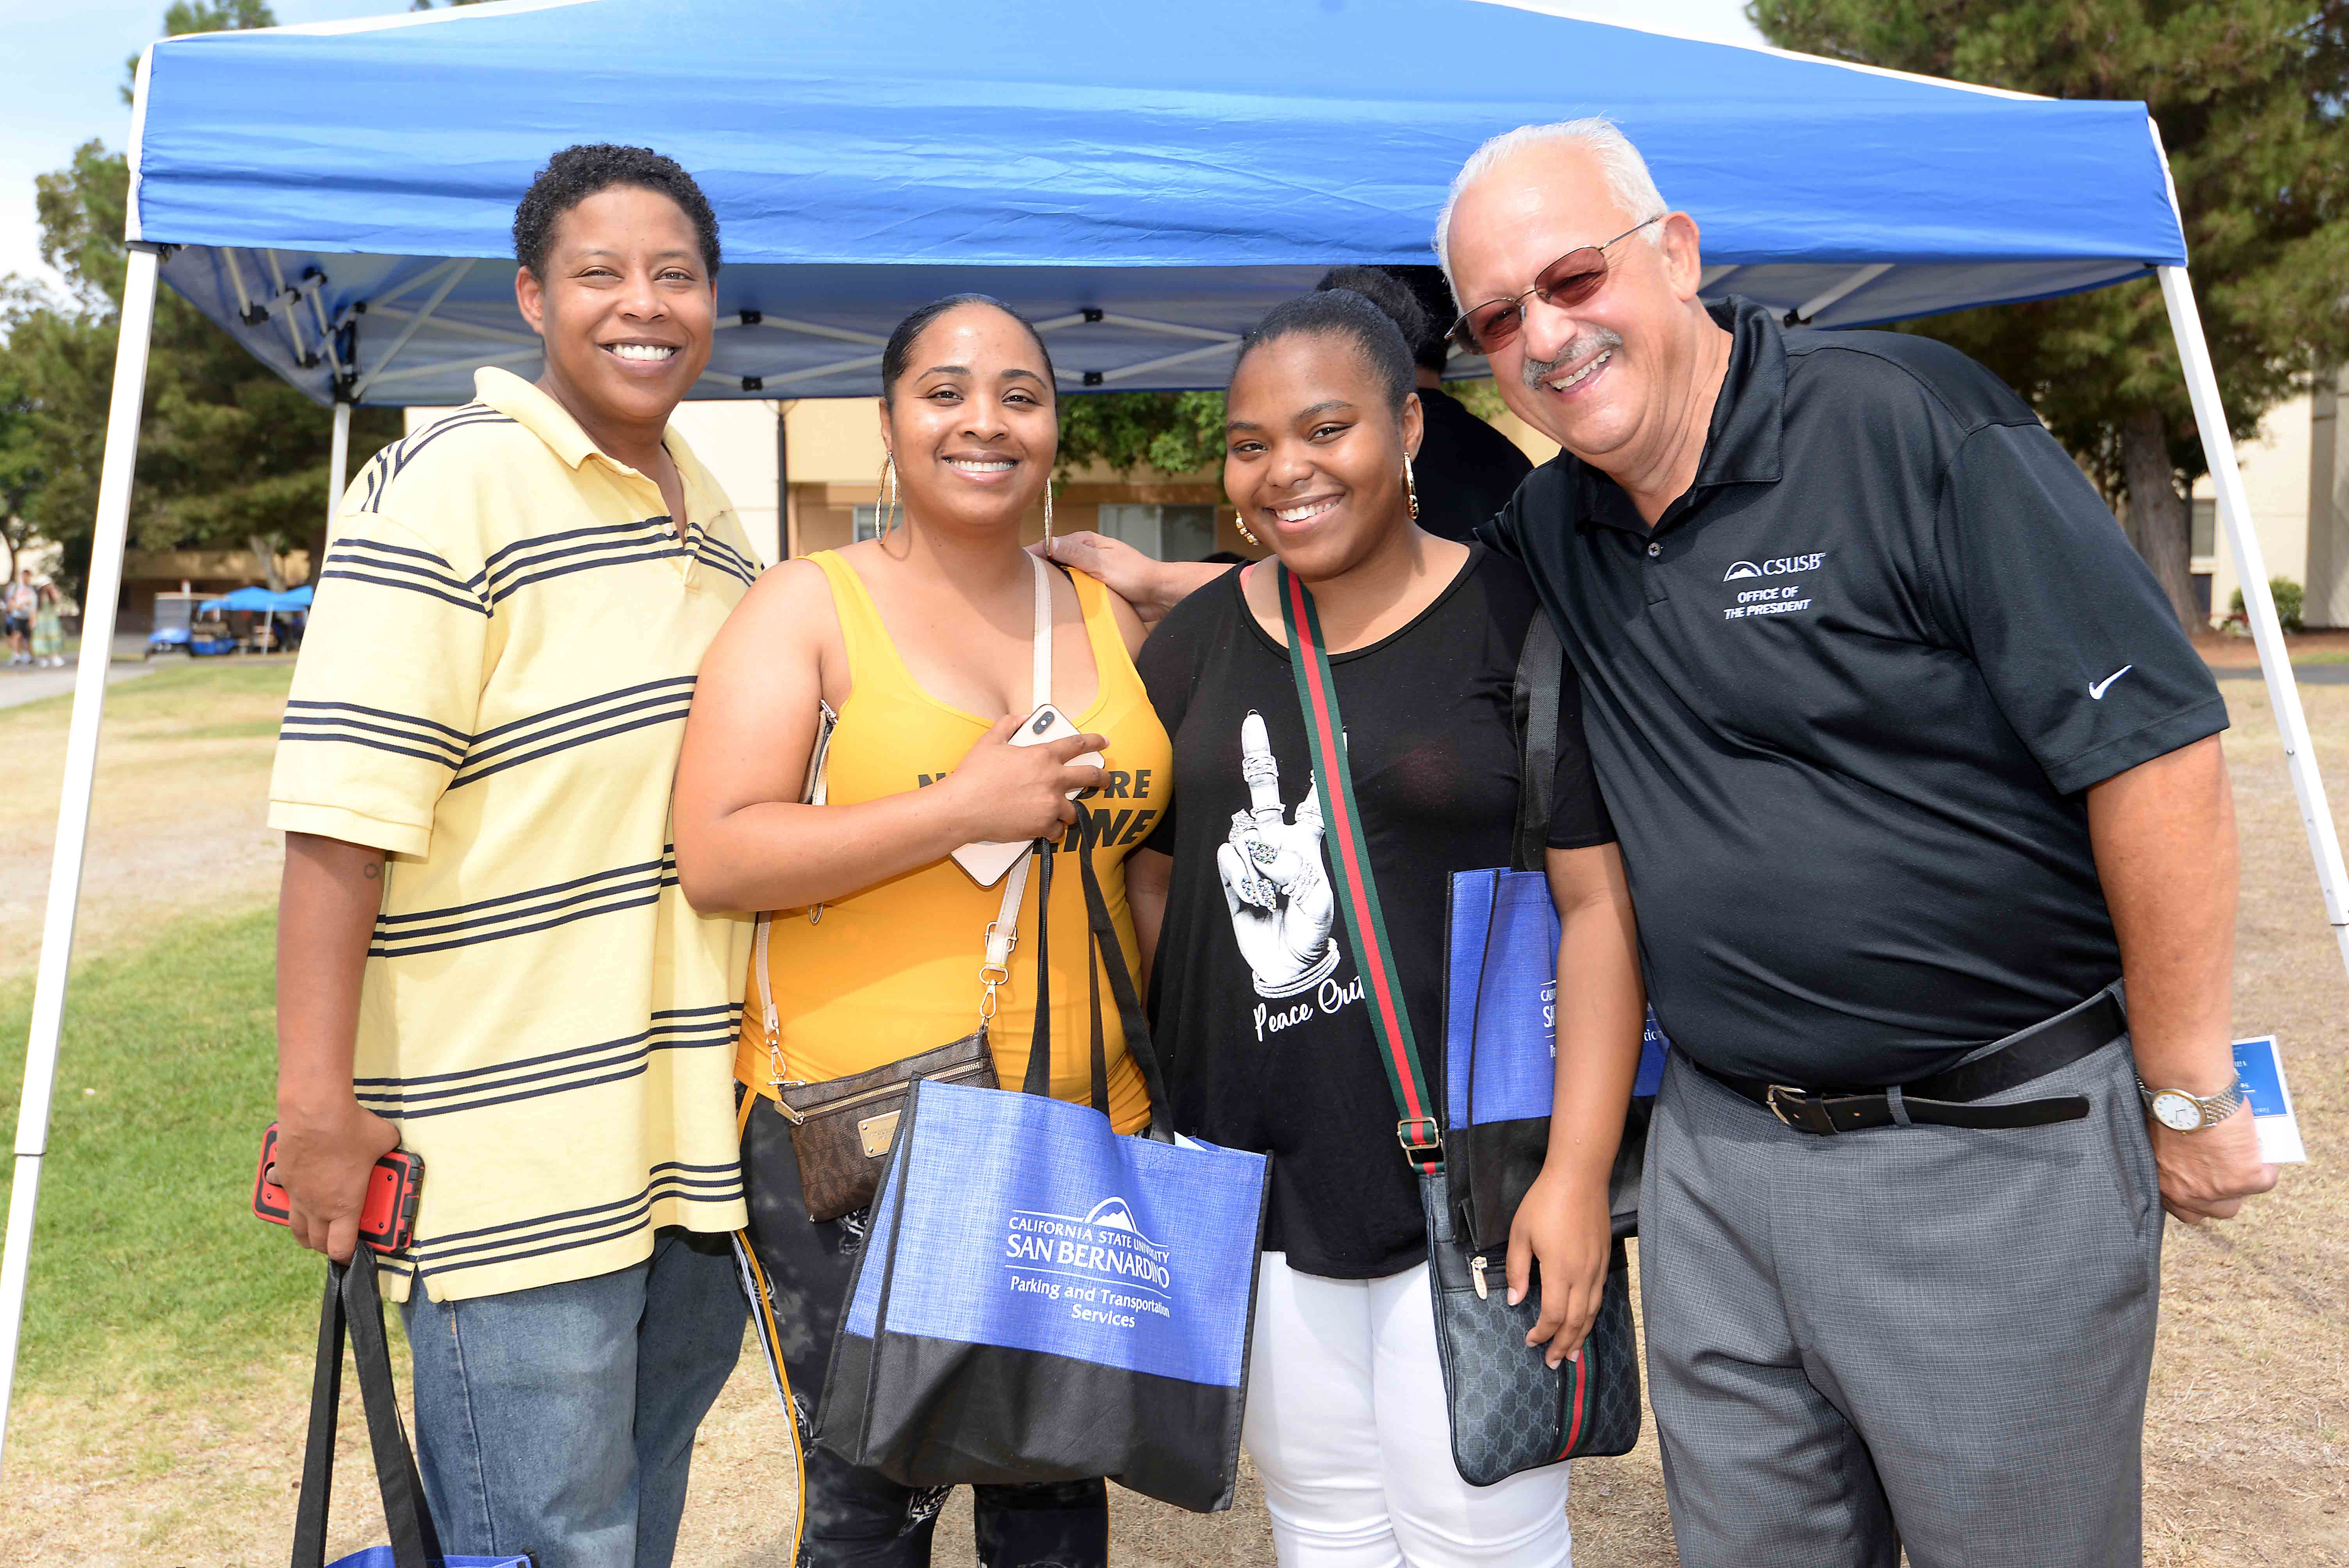 Move-in Day on Sept. 15 heralded the start of the 2019-20 academic year.